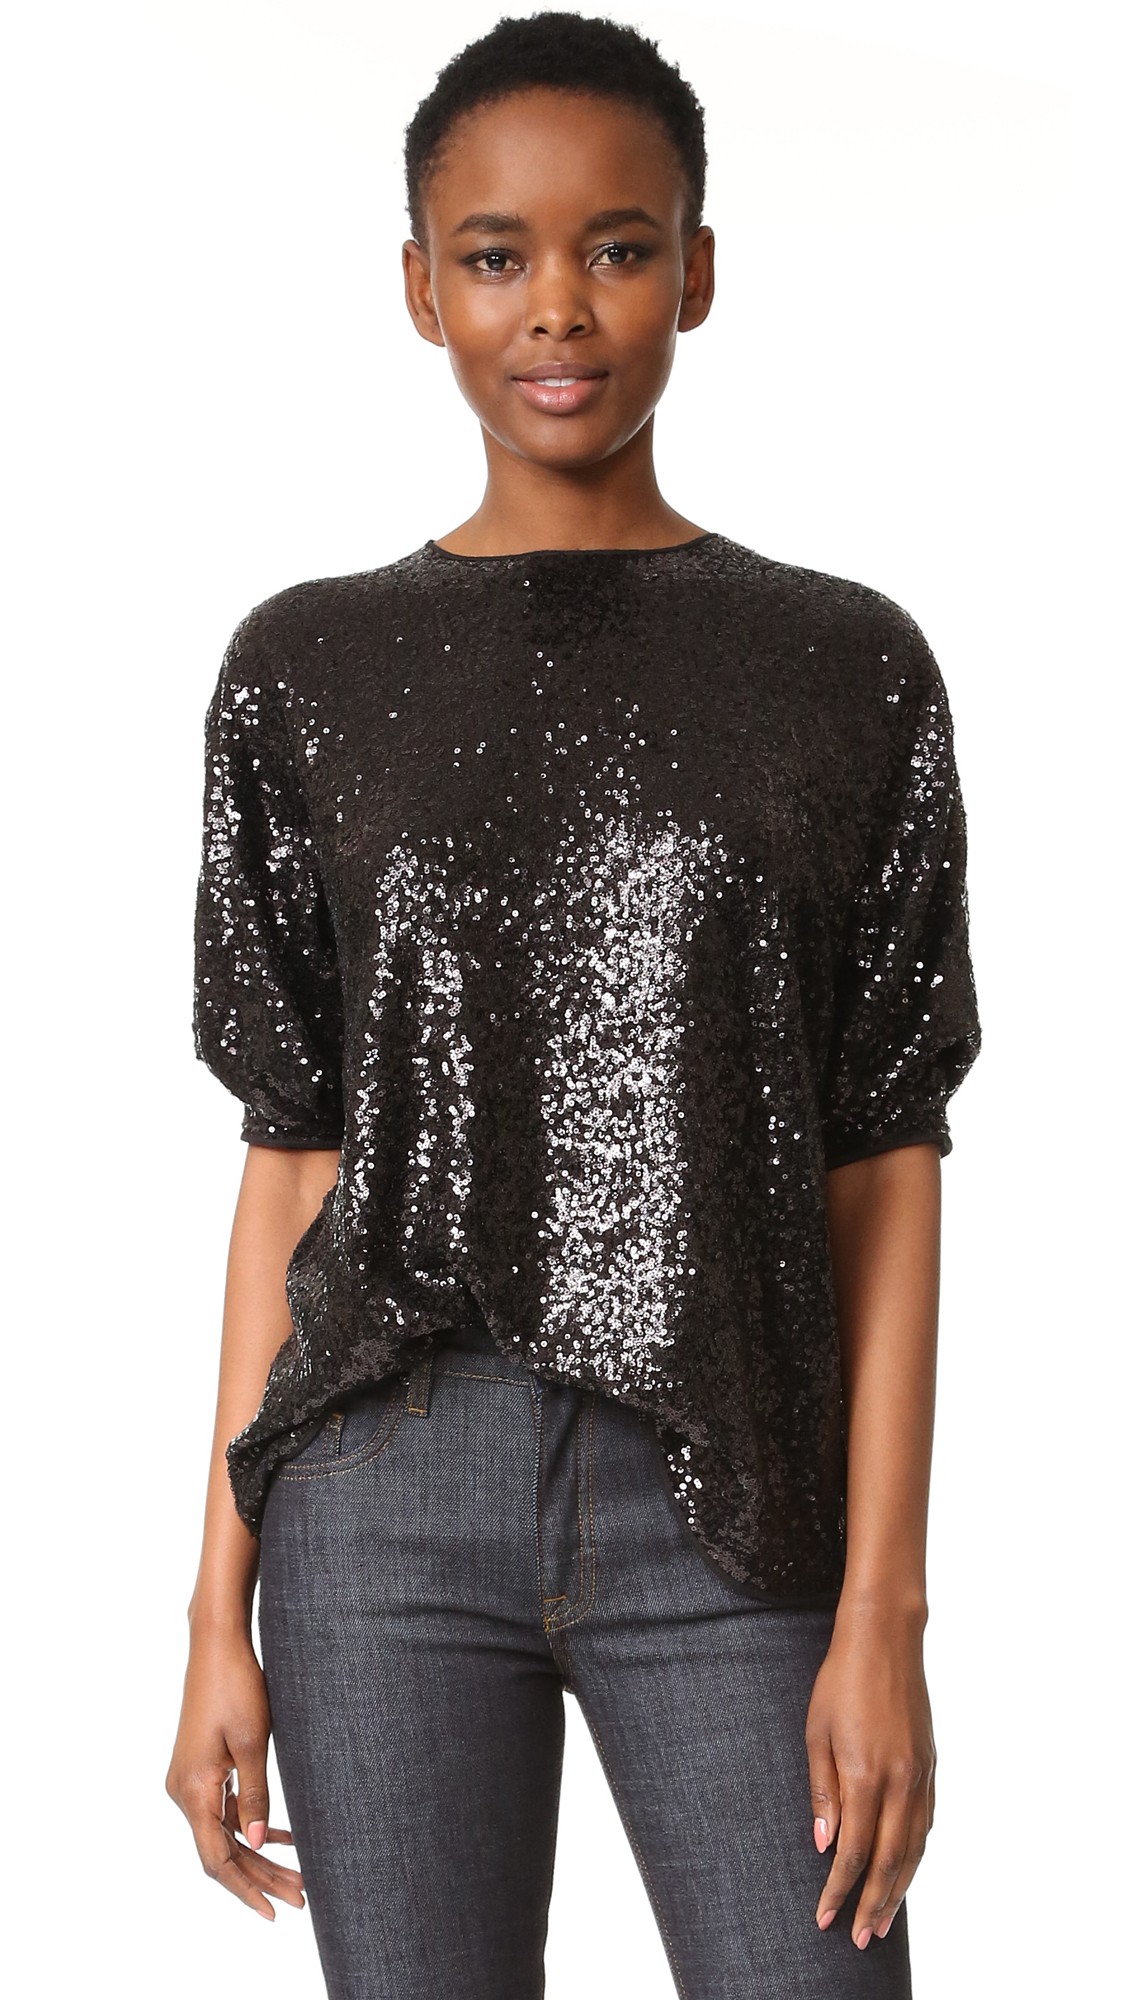 Victoria Victoria Beckham Sequin Tucked Sleeve Top - Black